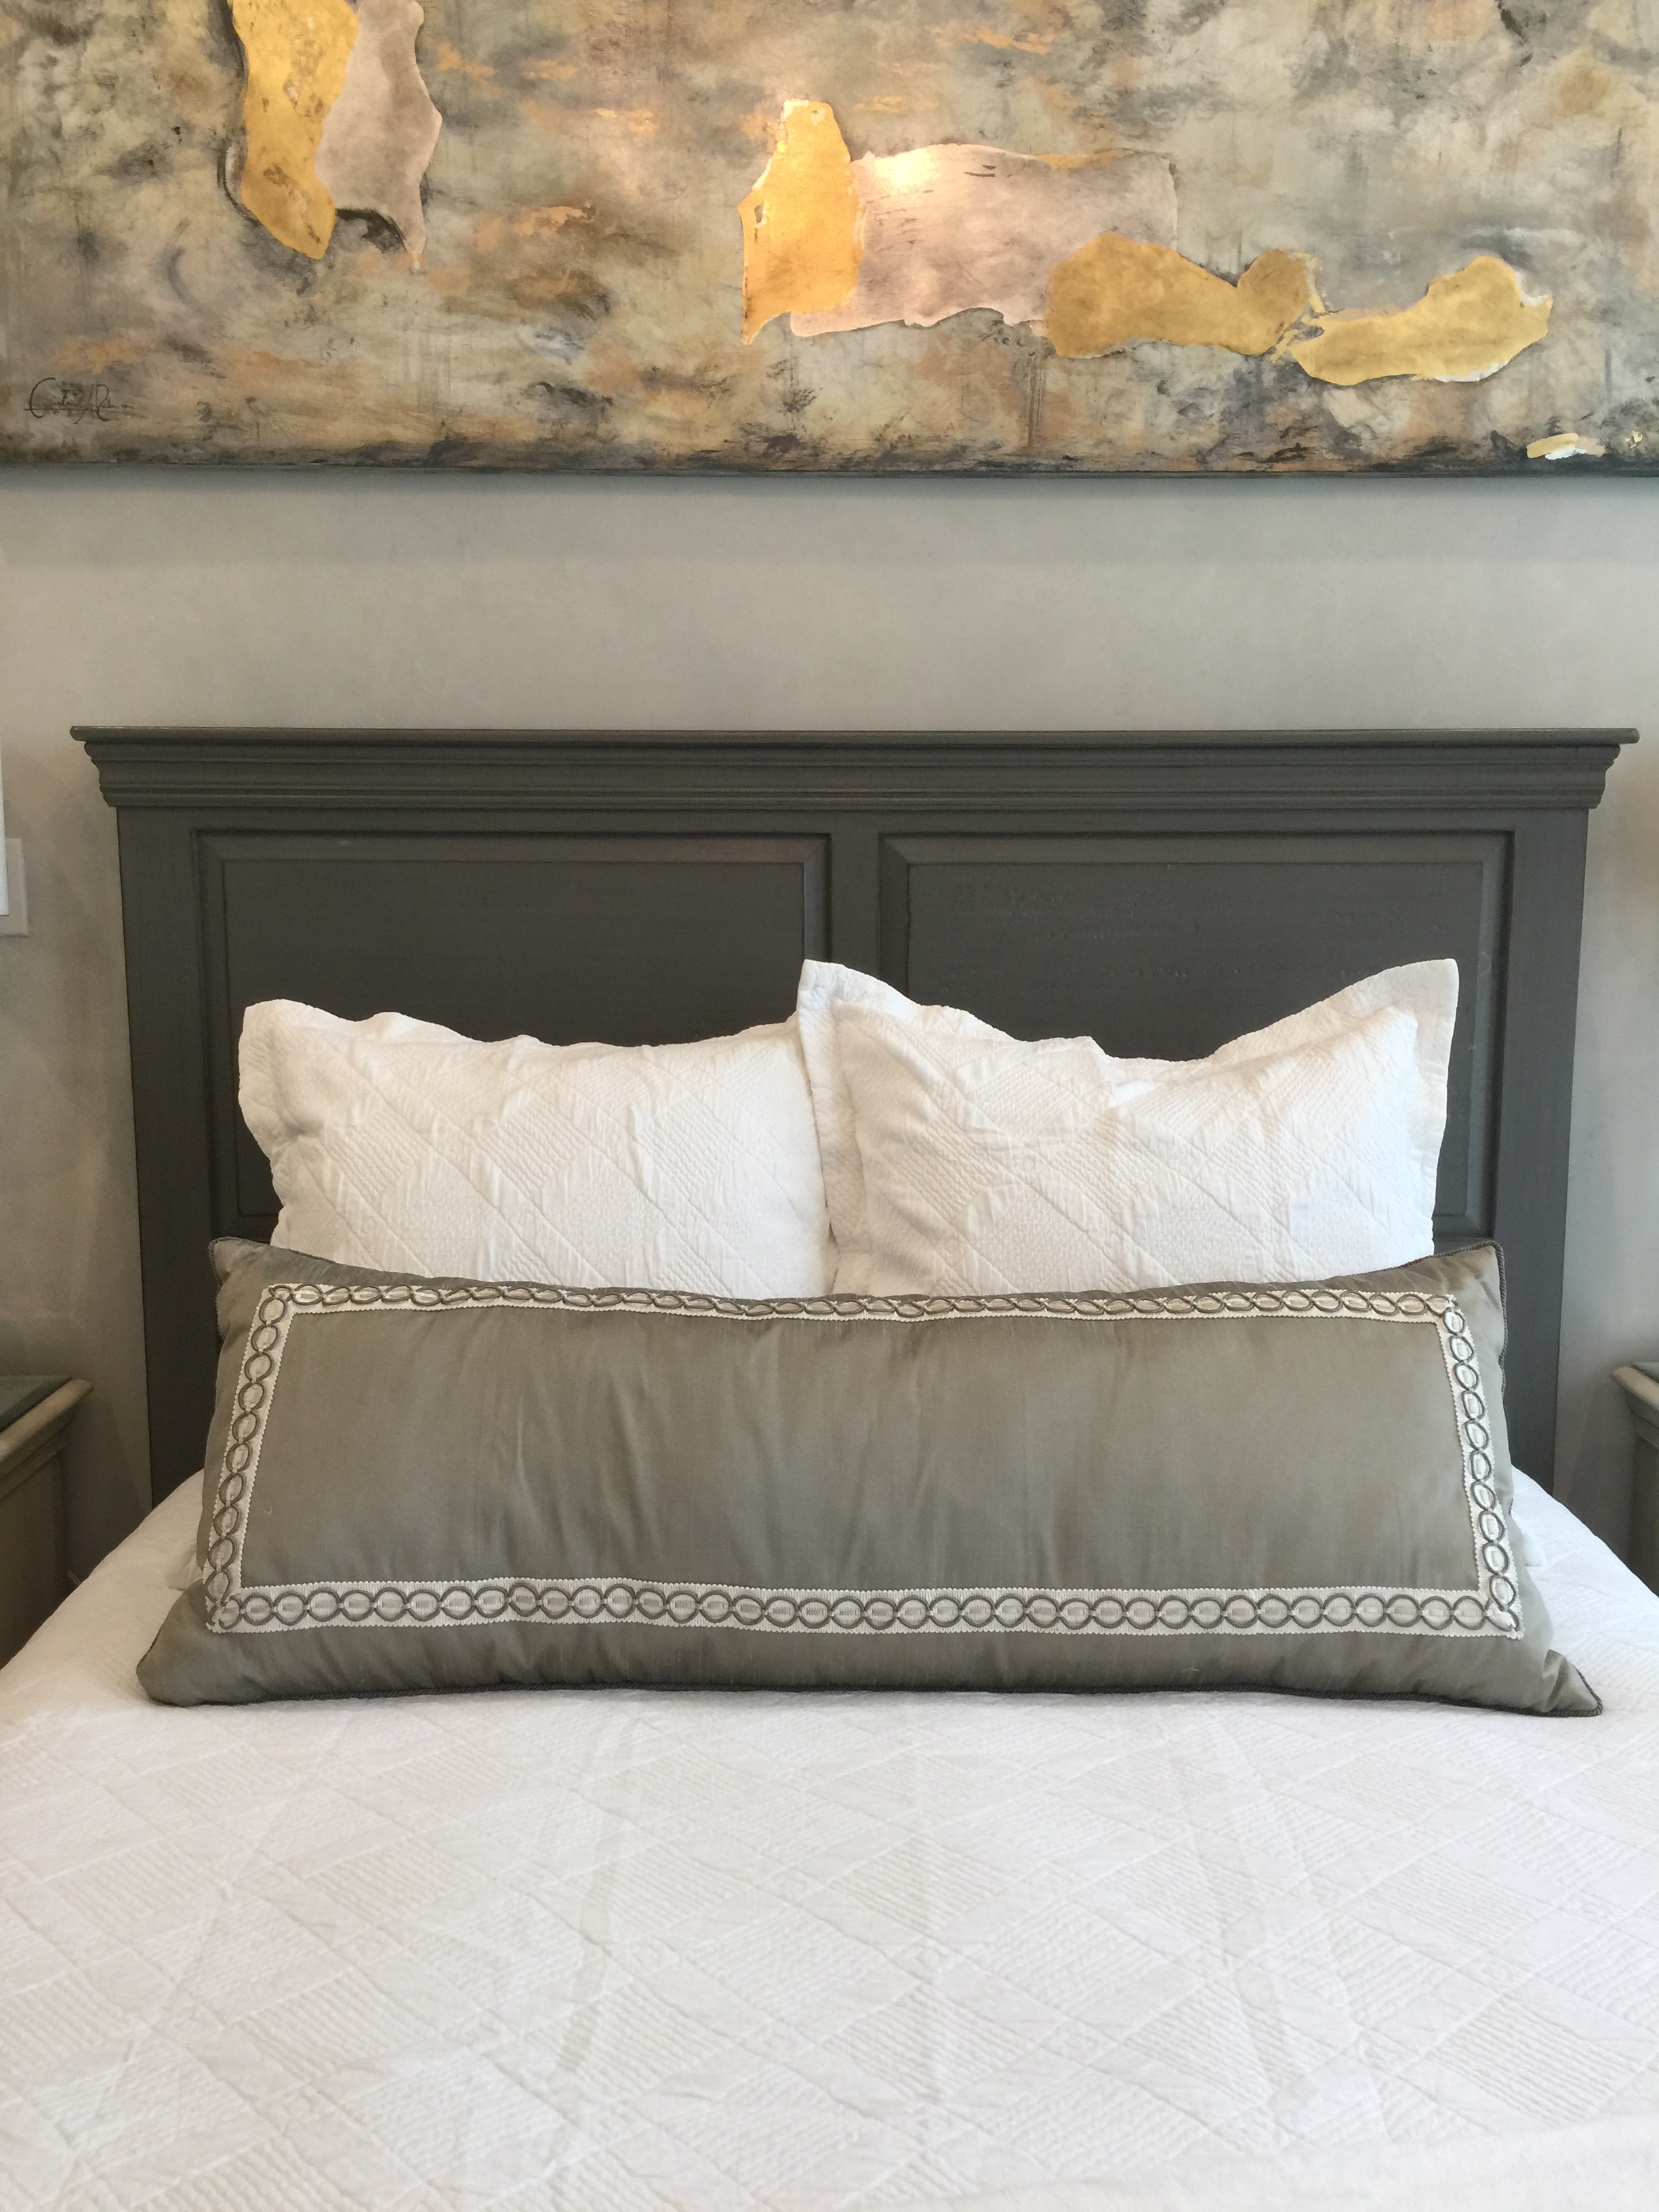 Guest Bedroom designed by Cristina Robinson with art by her as well.